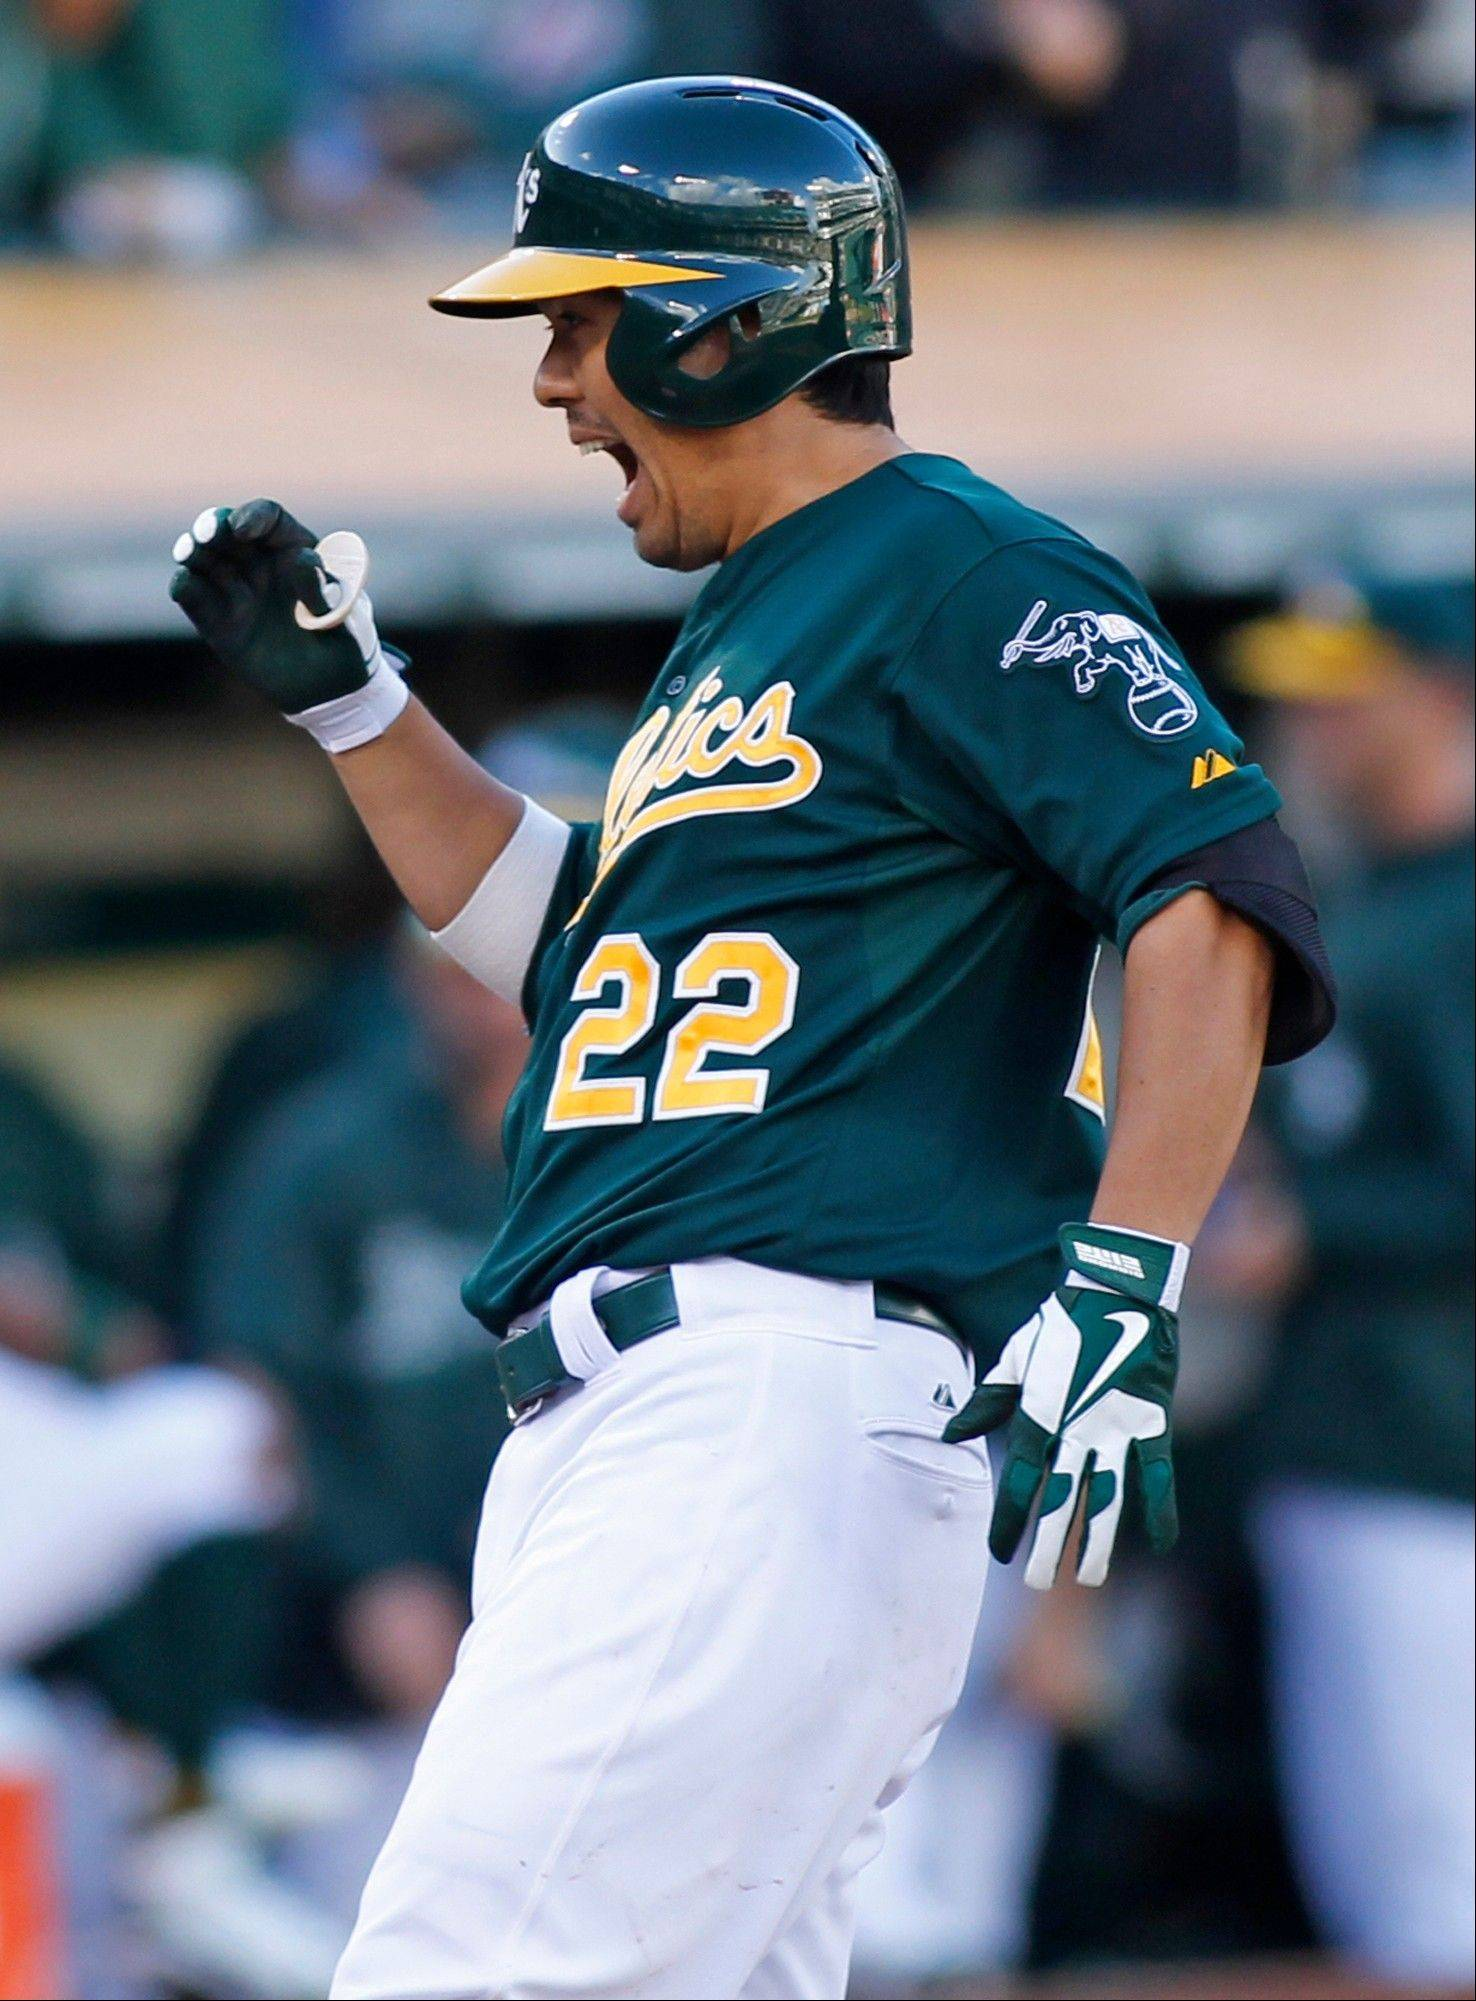 Catcher Kurt Suzuki hit .232 with five homers and 32 RBIs for the Washington Nationals and Oakland Athletics last season.